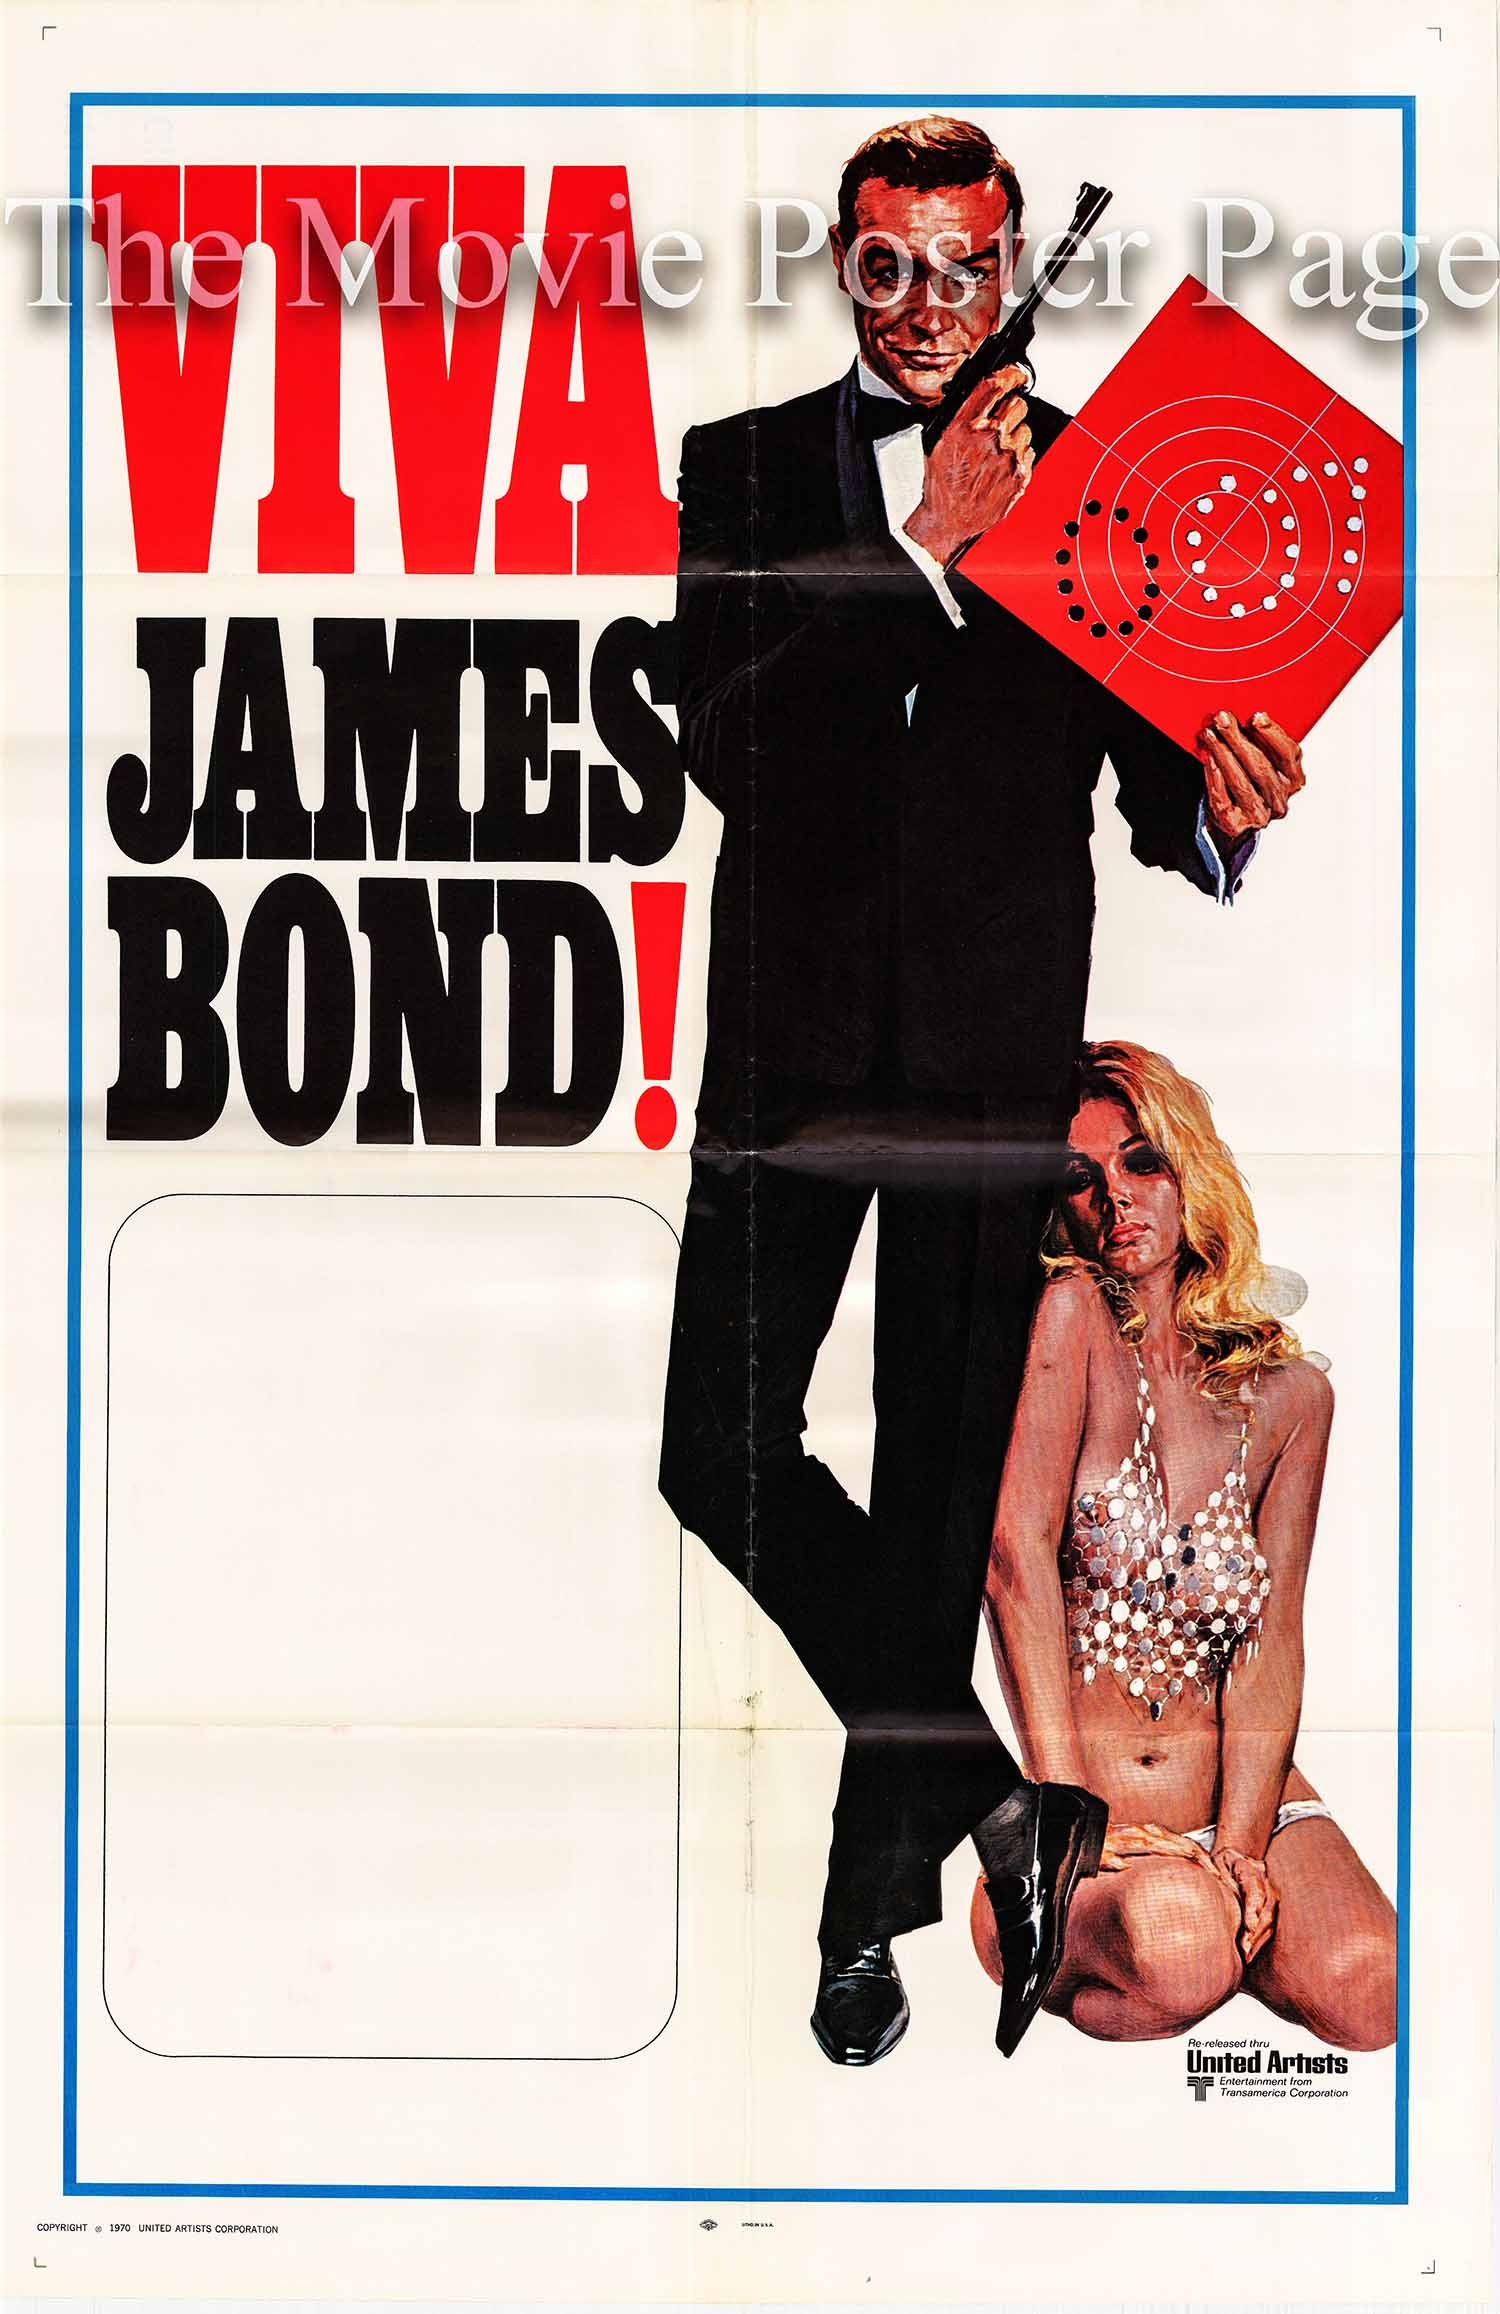 Pictured is a James Bond stock poster issued in 1970 showing Sean Connary as James Bond.